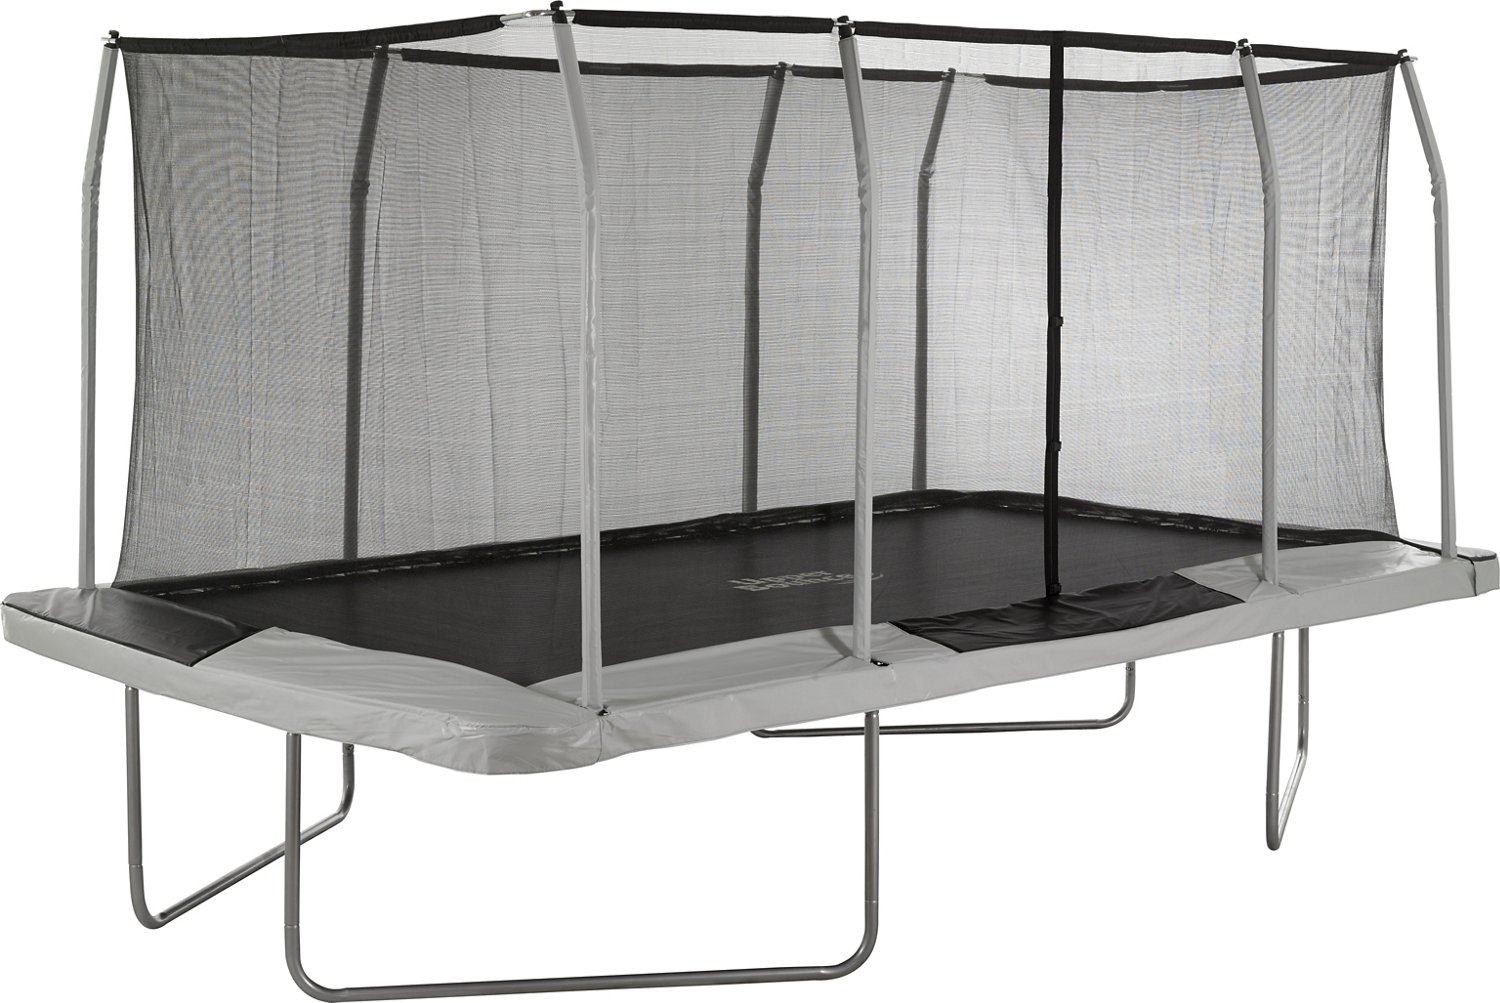 Upper Bounce 9 ft x 15 ft Rectangular Trampoline with Enclosure - view number 2